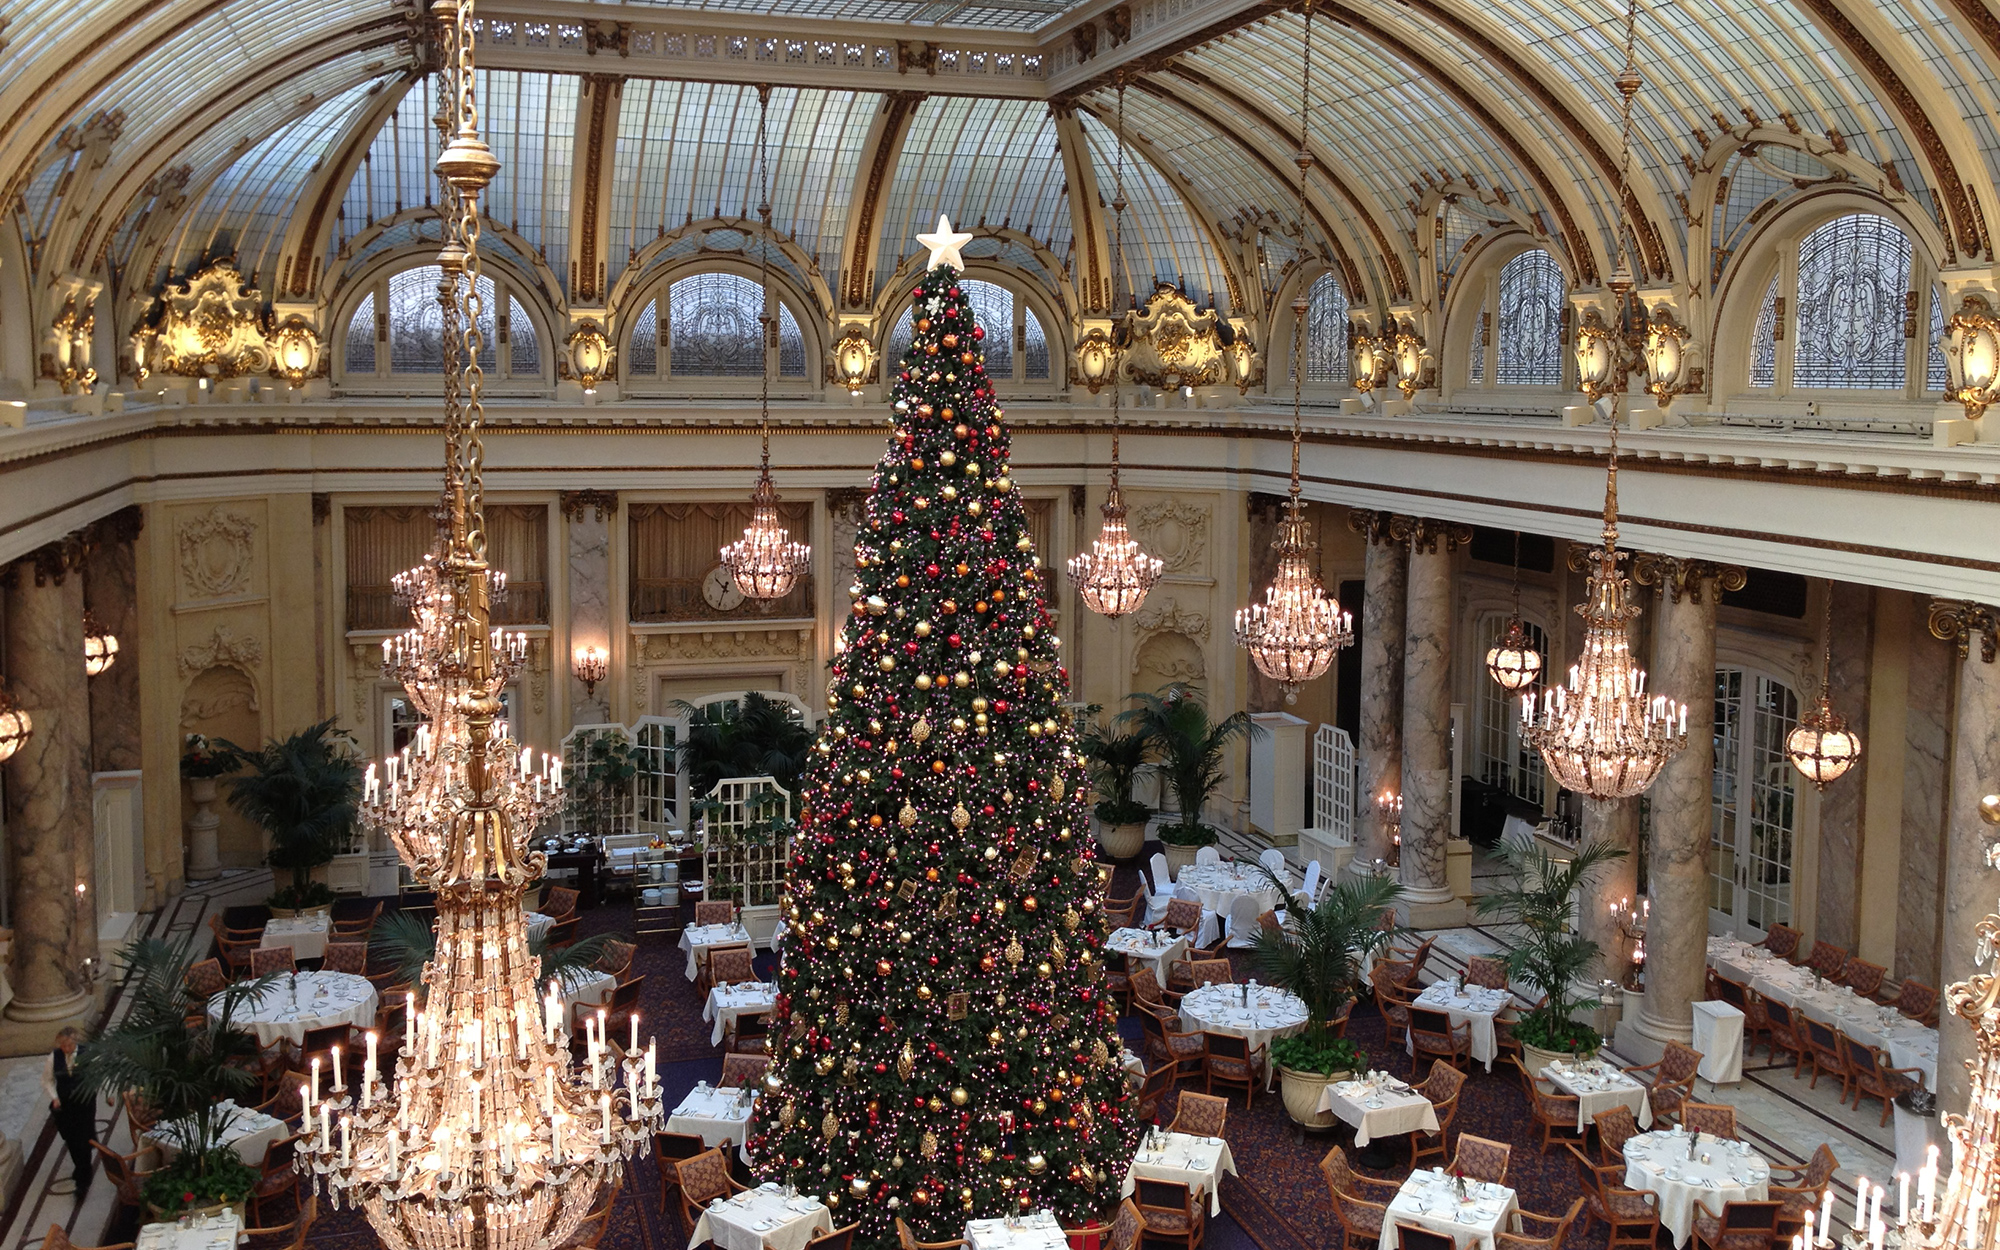 Best Holiday Restaurants in the U.S.: Palace Hotel, San Francisco